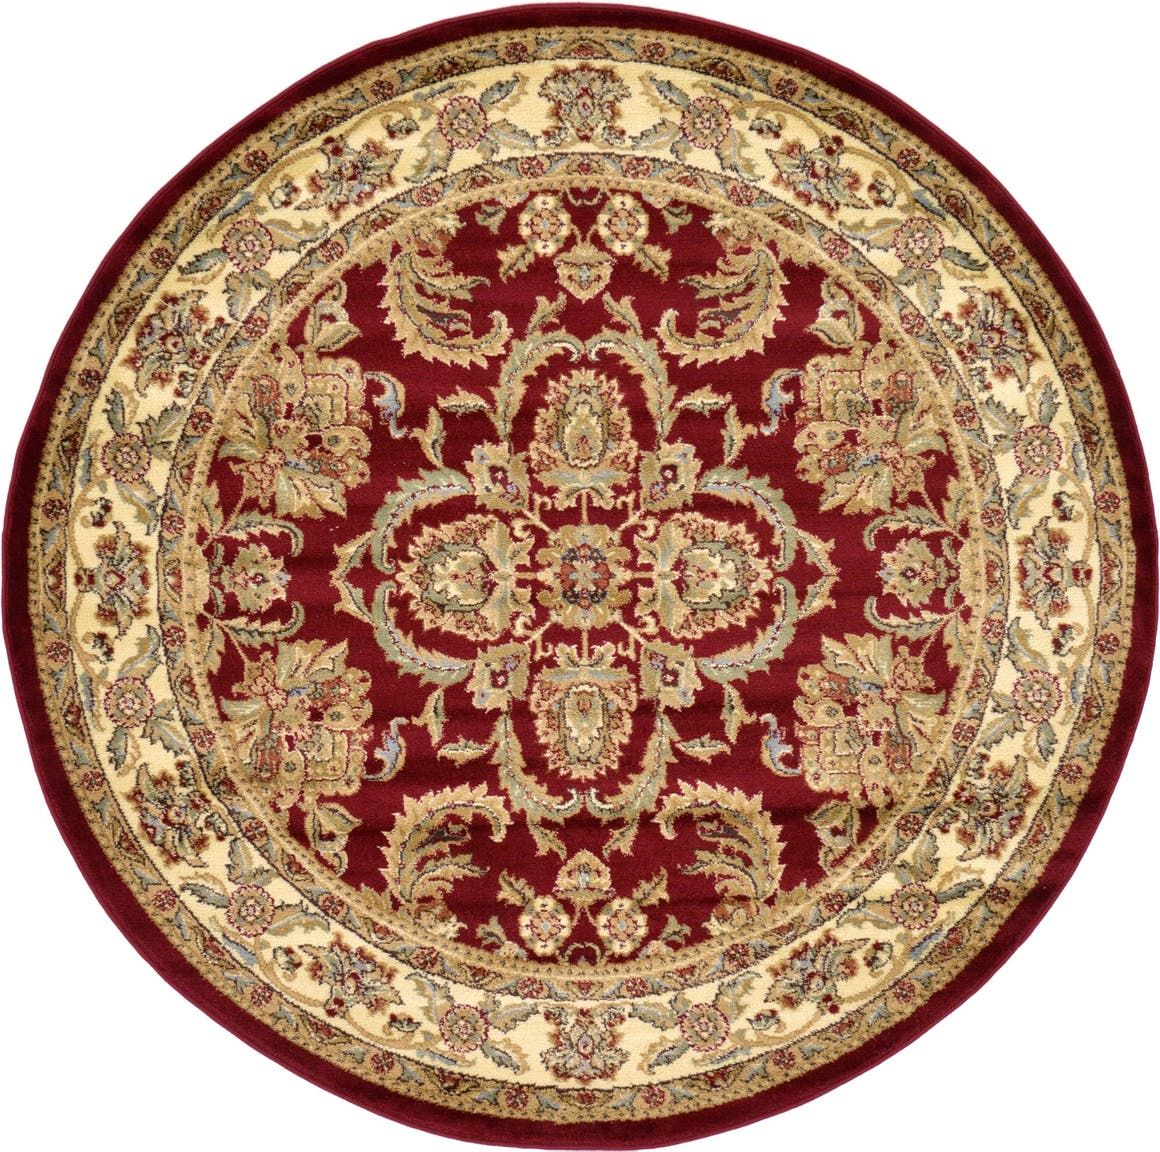 Aditi Red 6 Ft Round Area Rug In 2020 Round Area Rugs Area Rugs